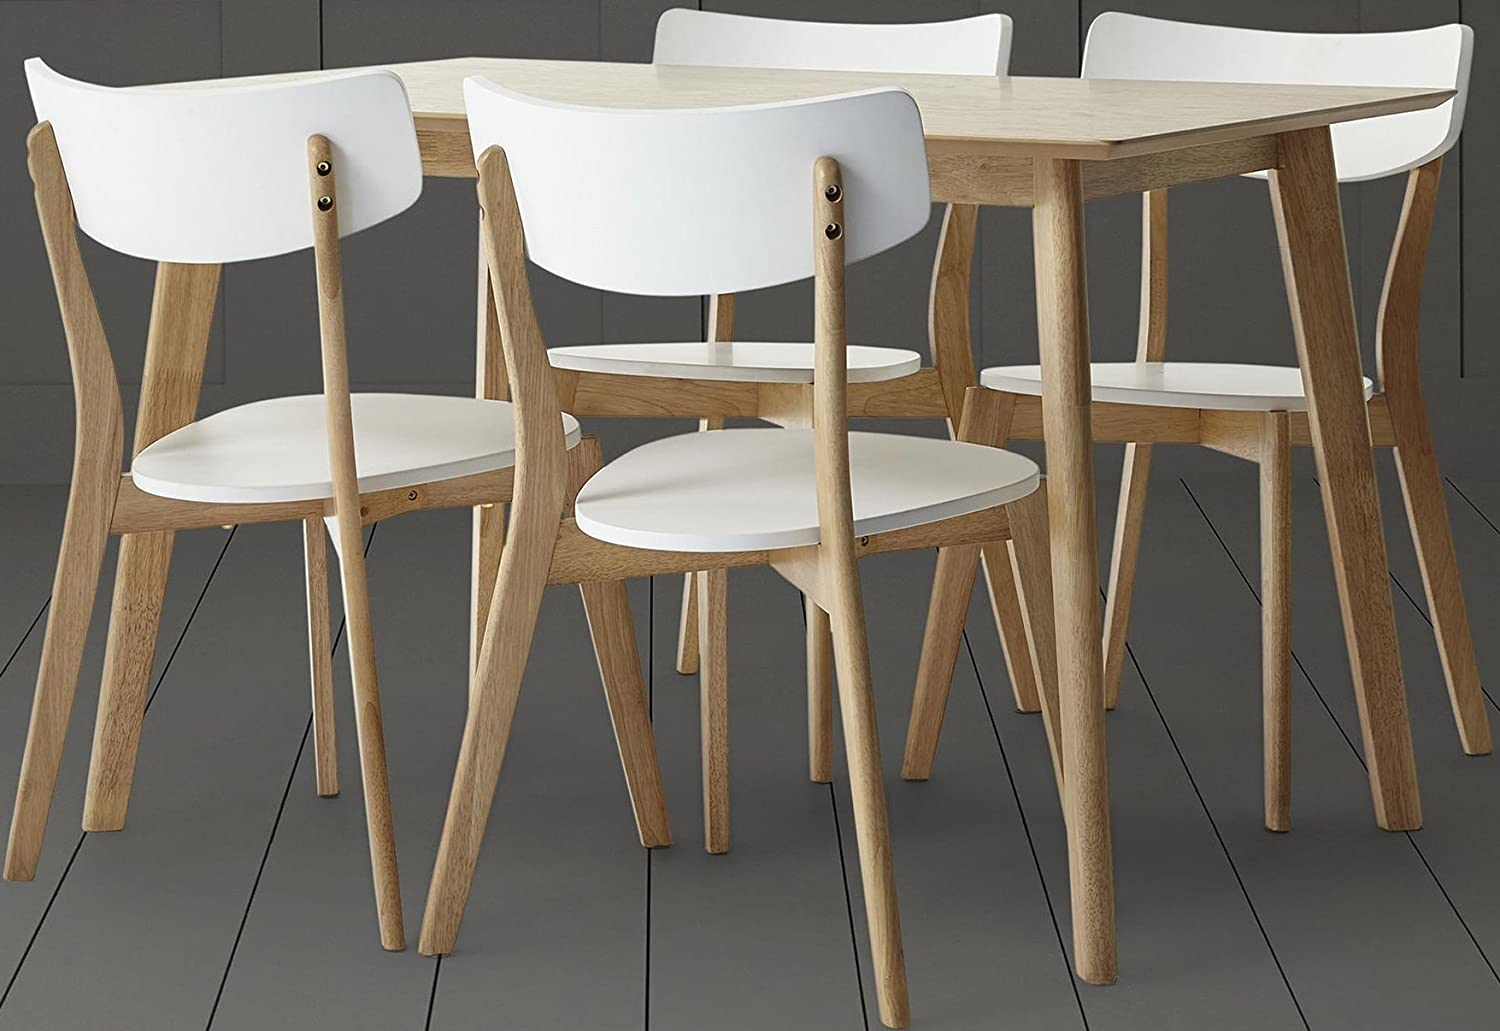 Tesco NEW Charlie 11 Seat Dining Table and Chair Set Oak-Effect